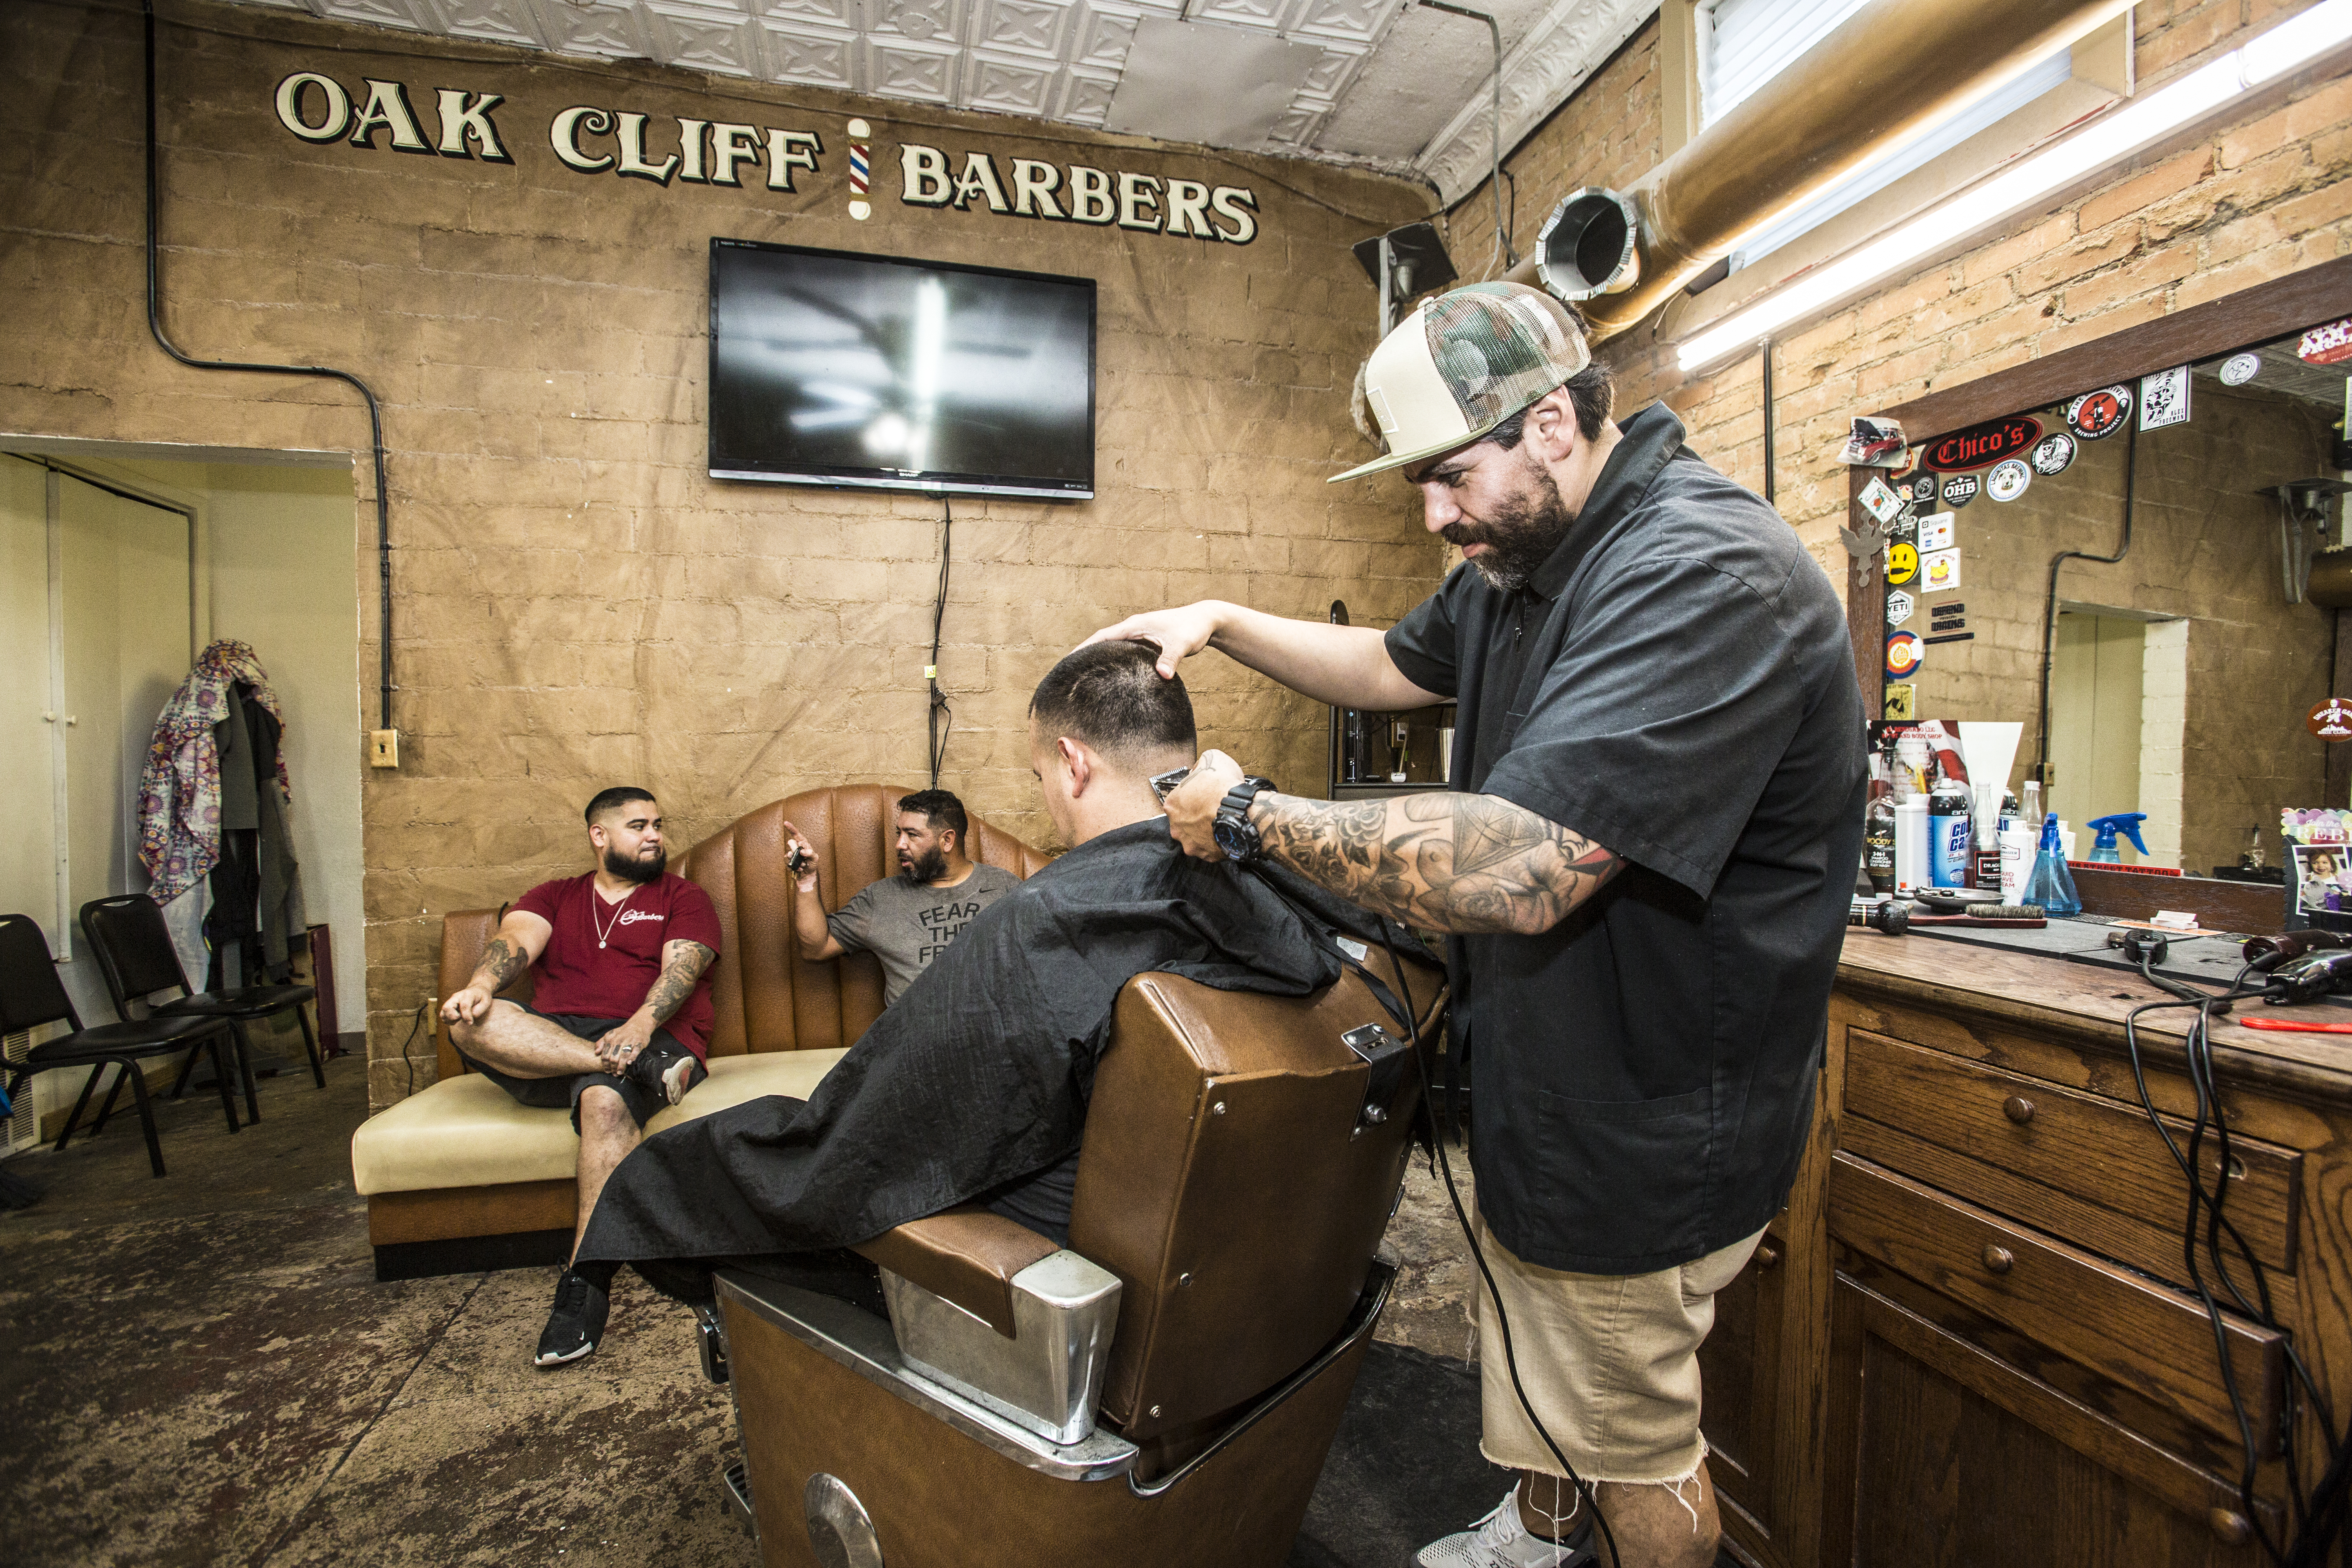 More Than a Trim: Oak Cliff Barbers Stays True to Roots